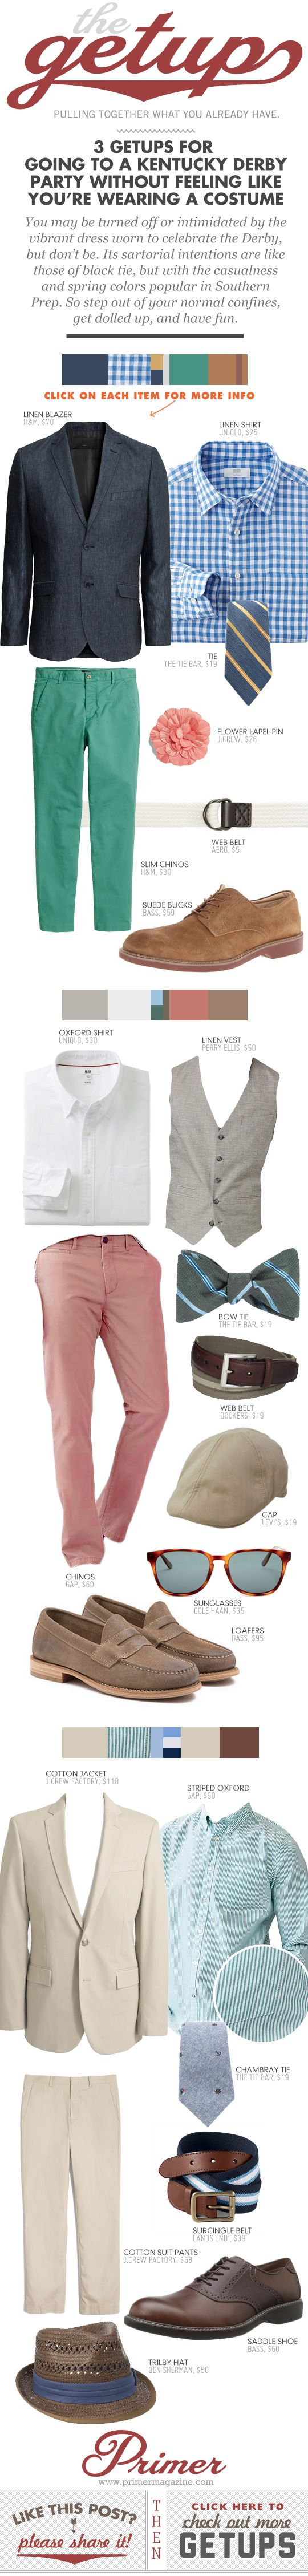 You may be turned off or intimidated by the vibrant dress worn to celebrate the Derby, but don't be. Its sartorial intentions are like those of black tie, but with the casualness and spring colors popular in Southern Prep. So step out of your normal confines, get dolled up, and have fun.